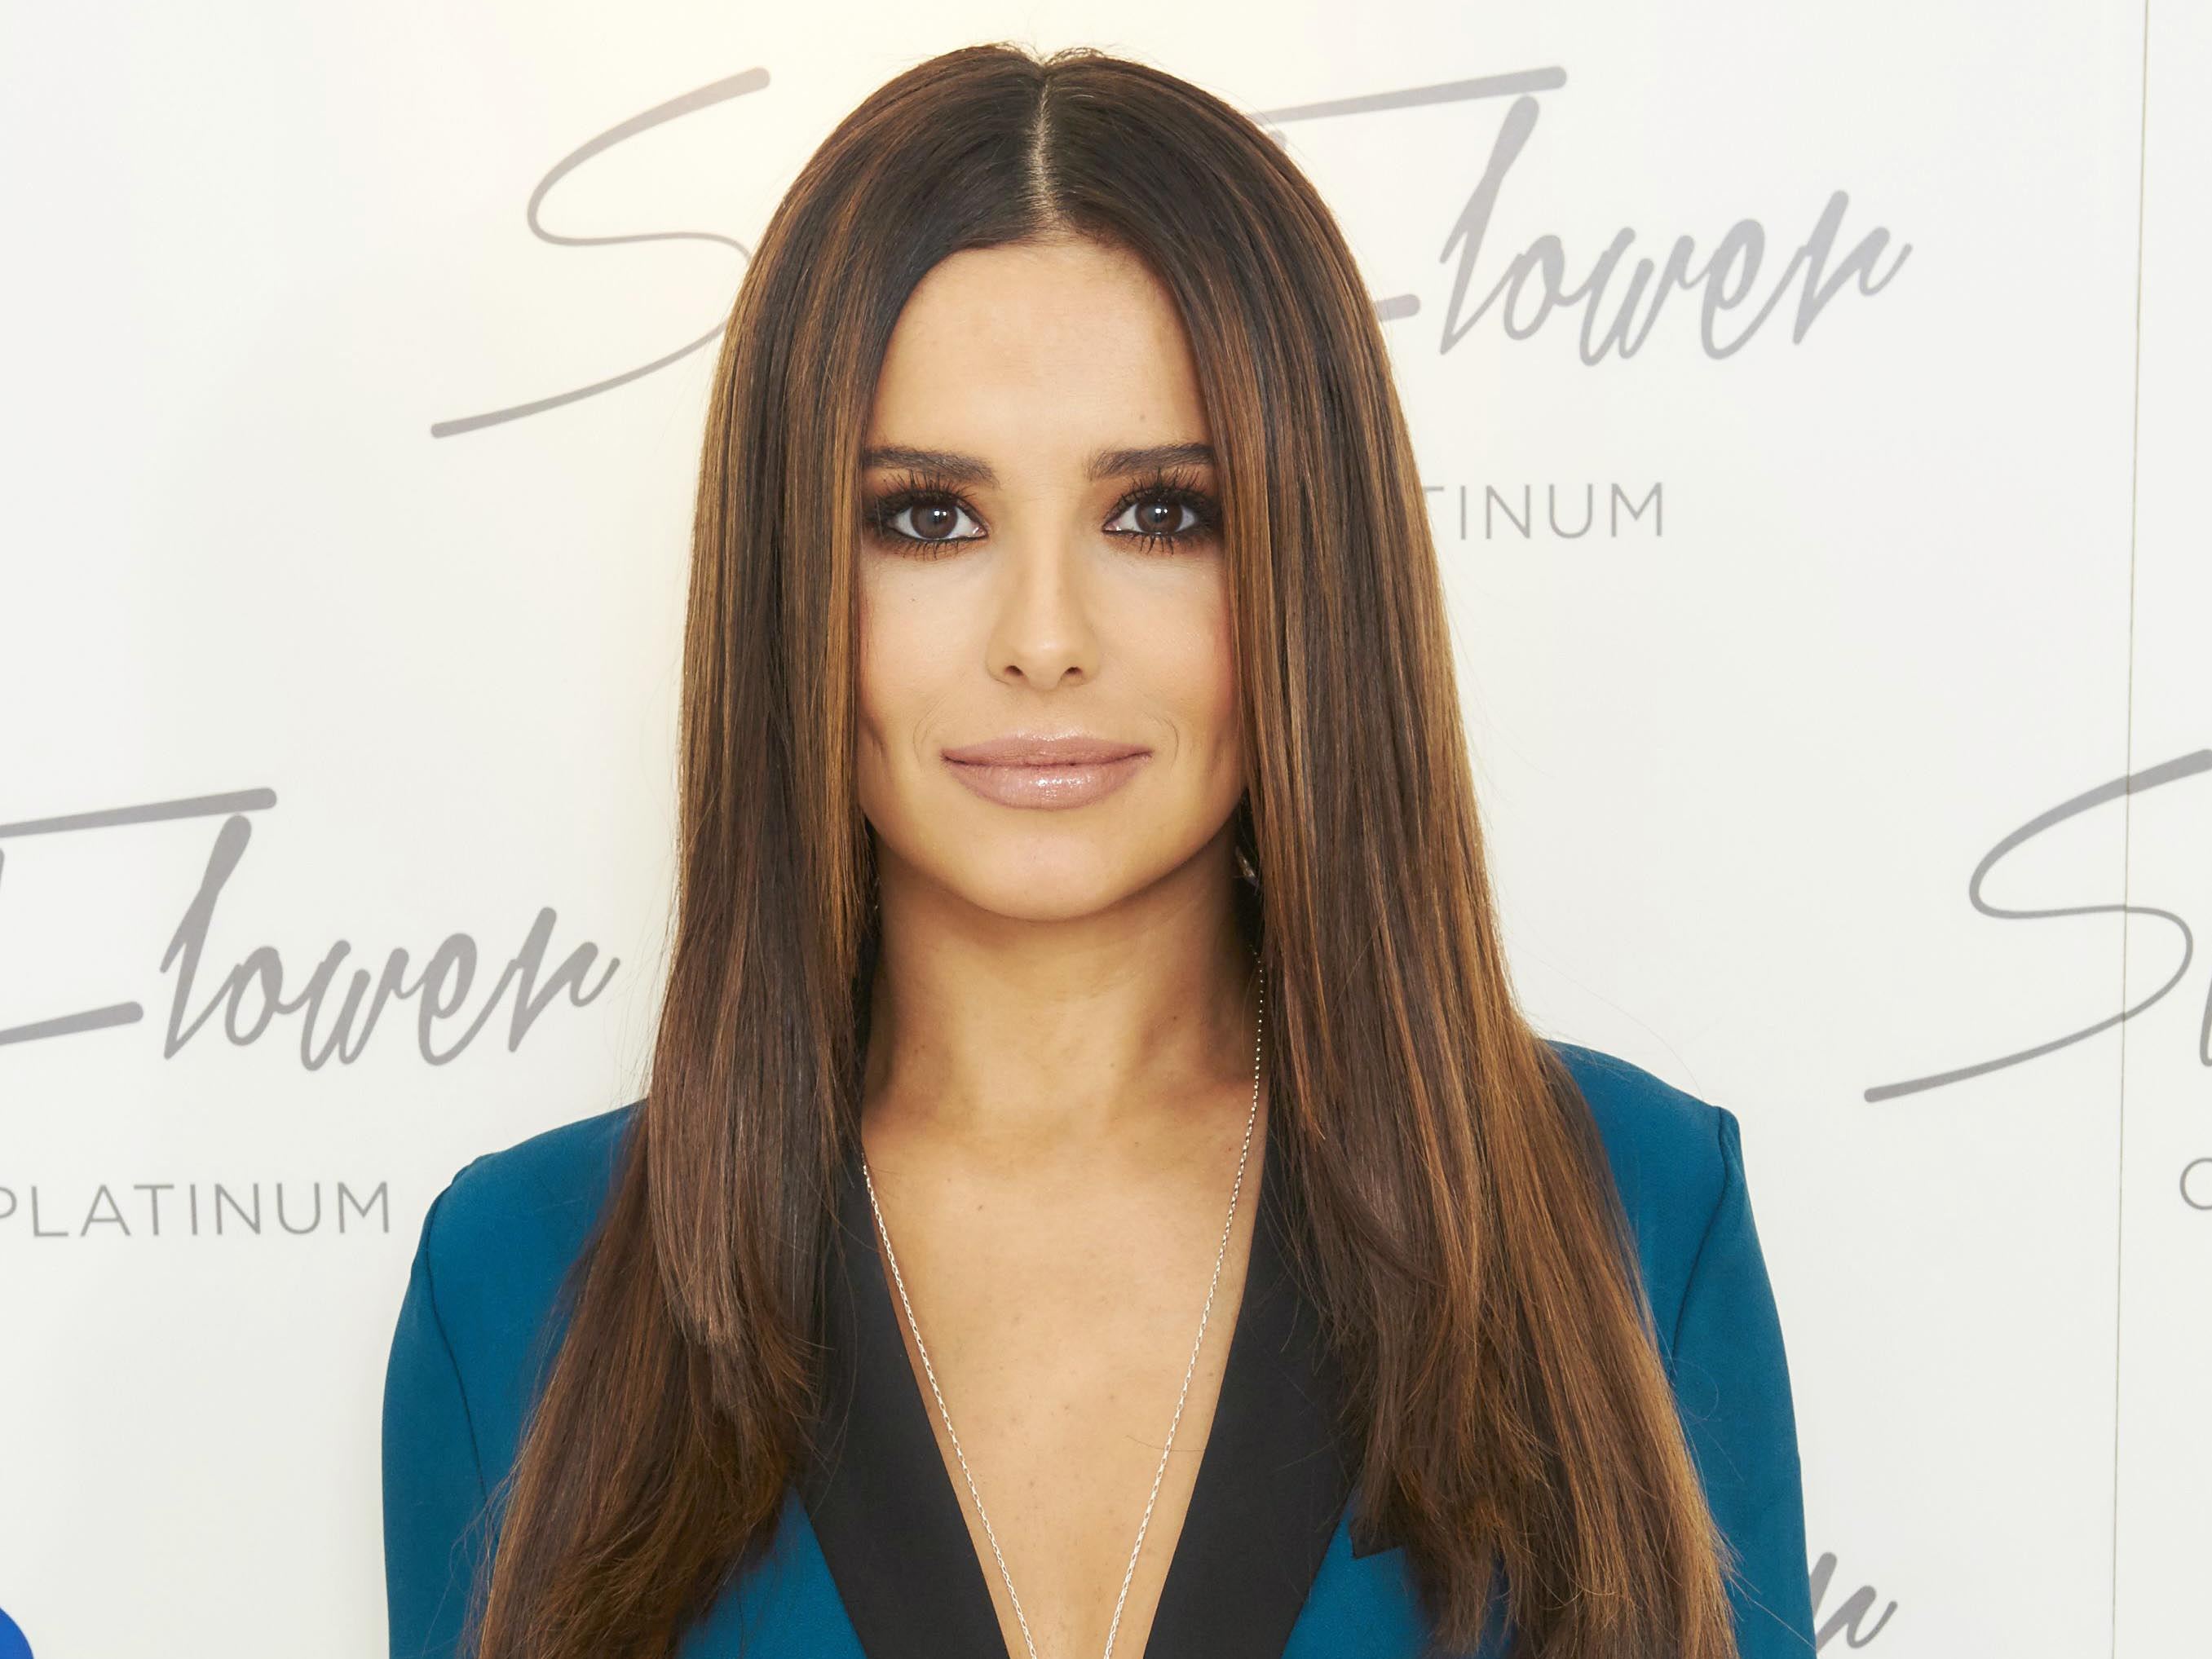 Cheryl Cole wows in first public appearance since split Cheryl Cole wows in first public appearance since split new foto